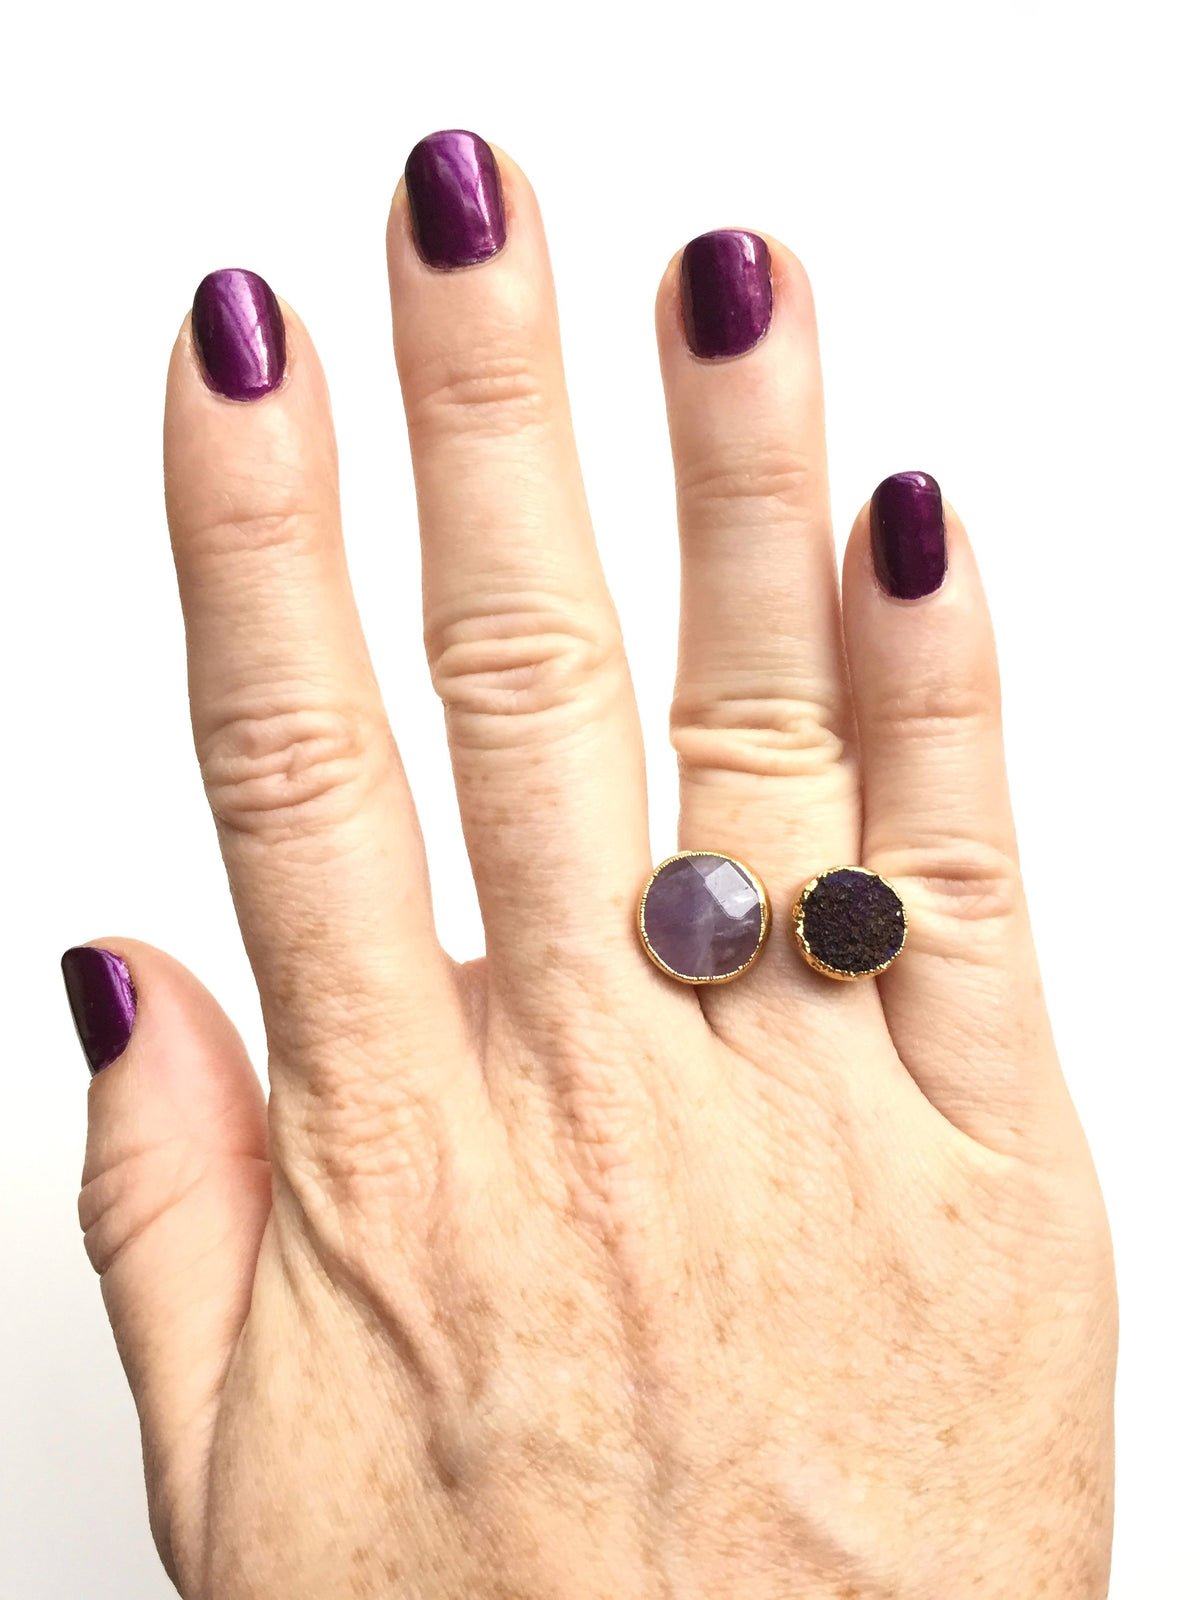 amethyst and druzy open ring on hand